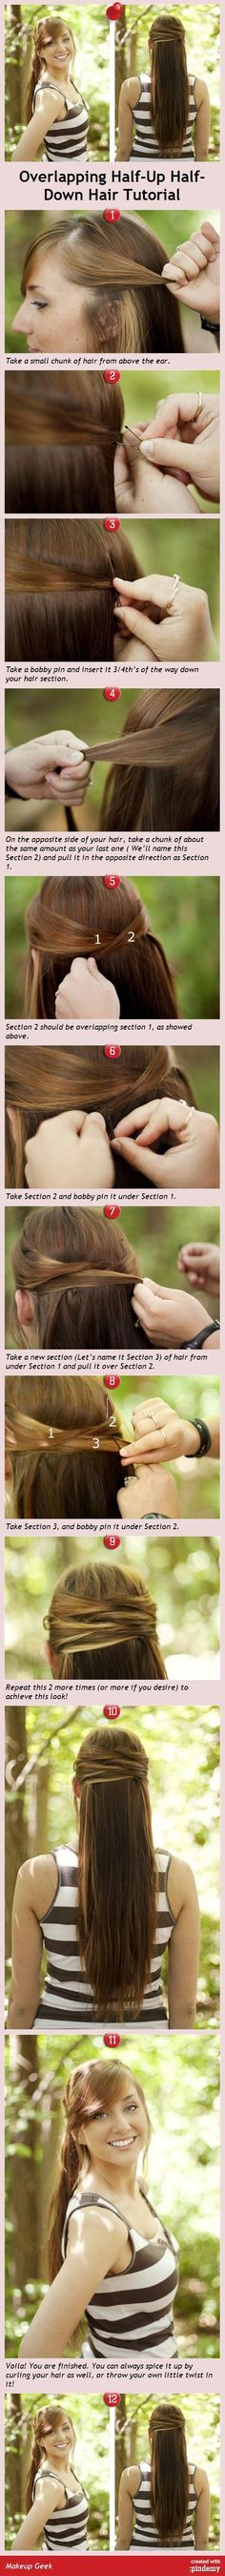 Overlapping Half-Up Half-Down Hair Tutorial -